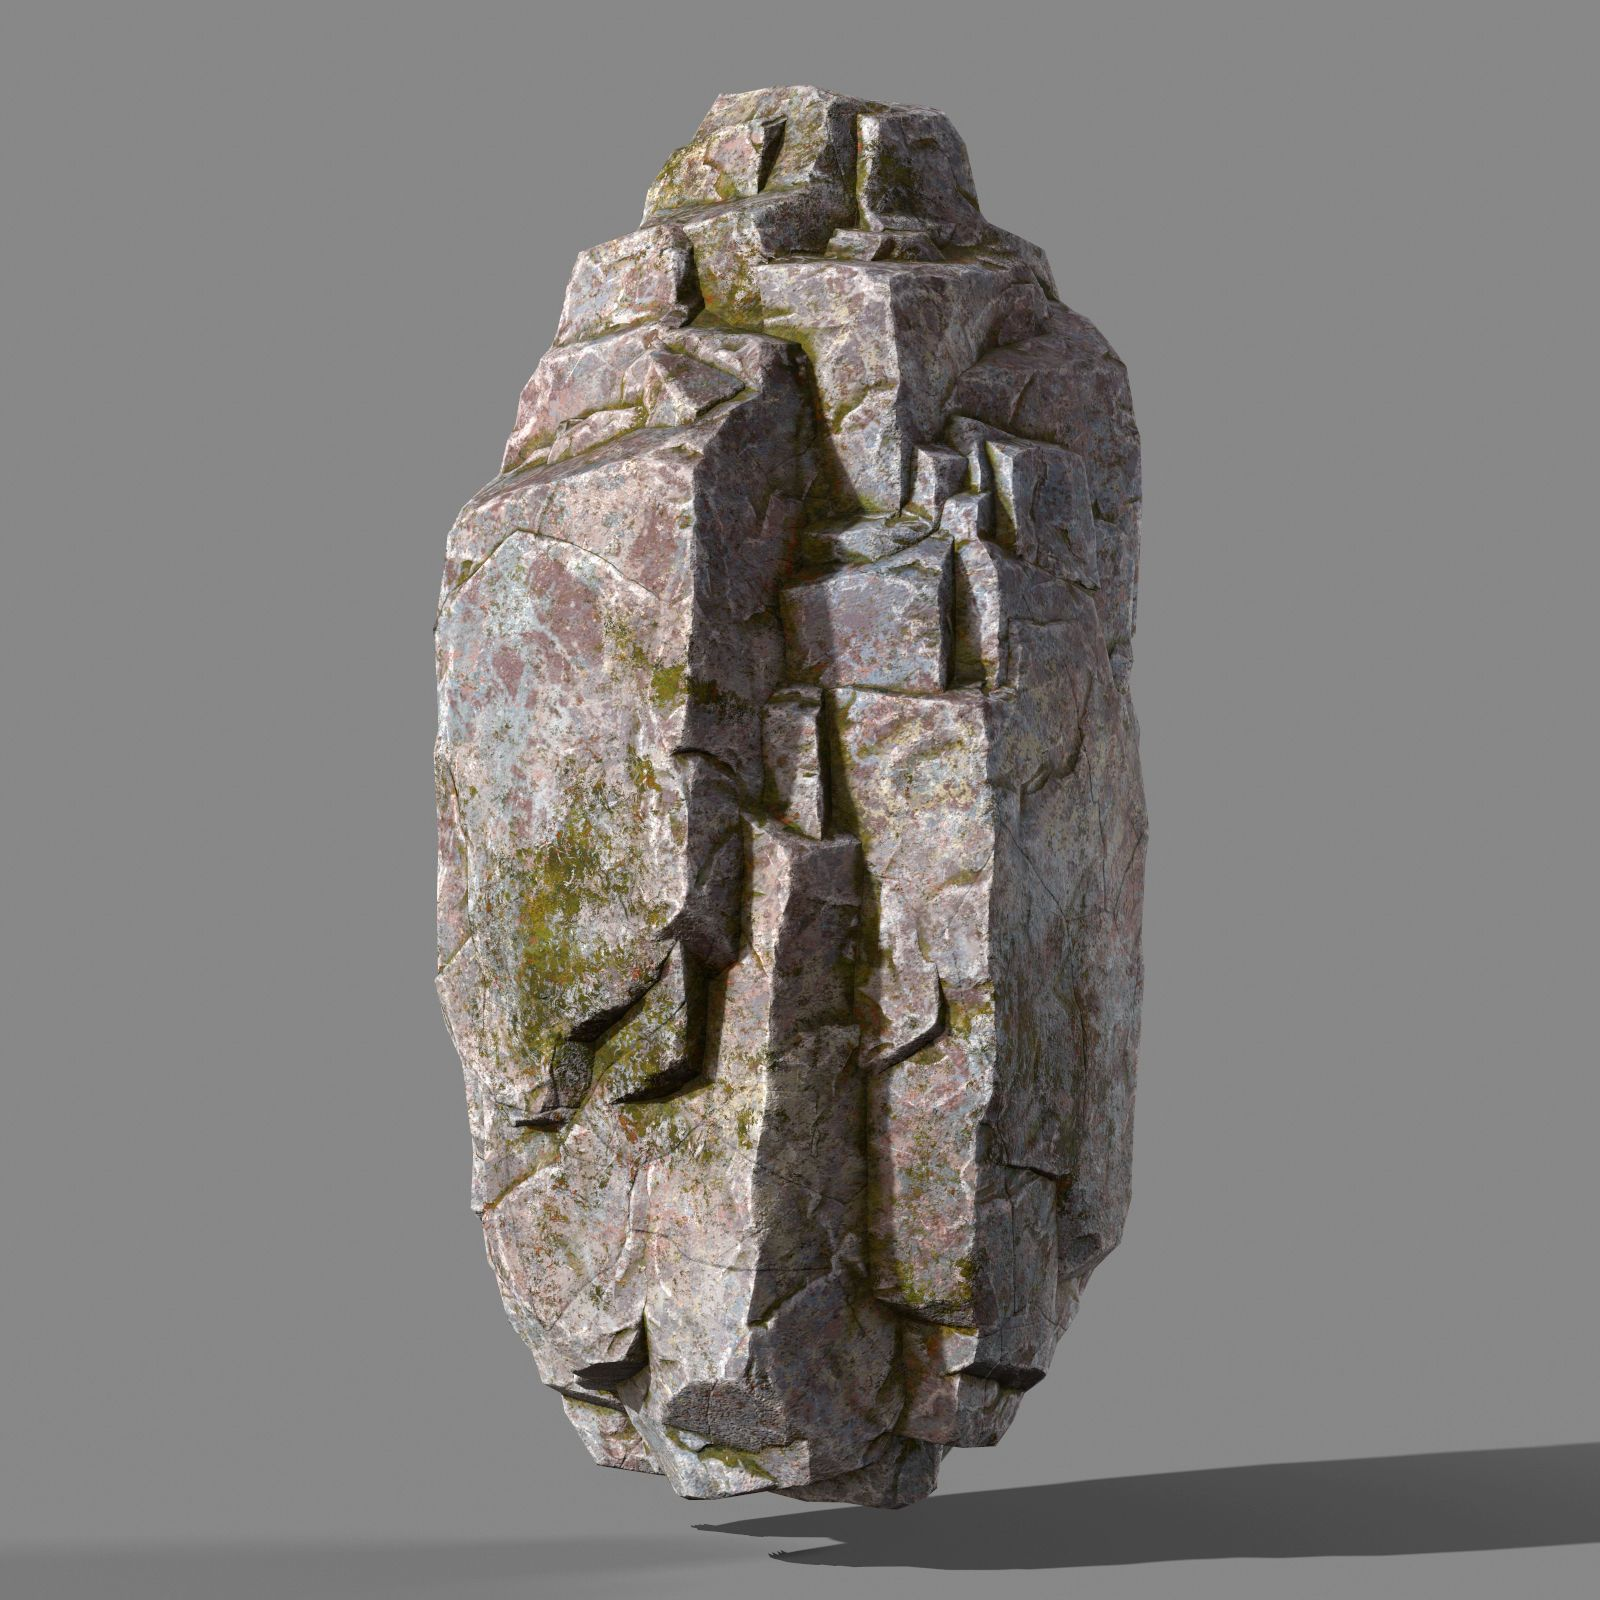 Mossy rock 3D model in 2020 Low poly 3d models, Rock